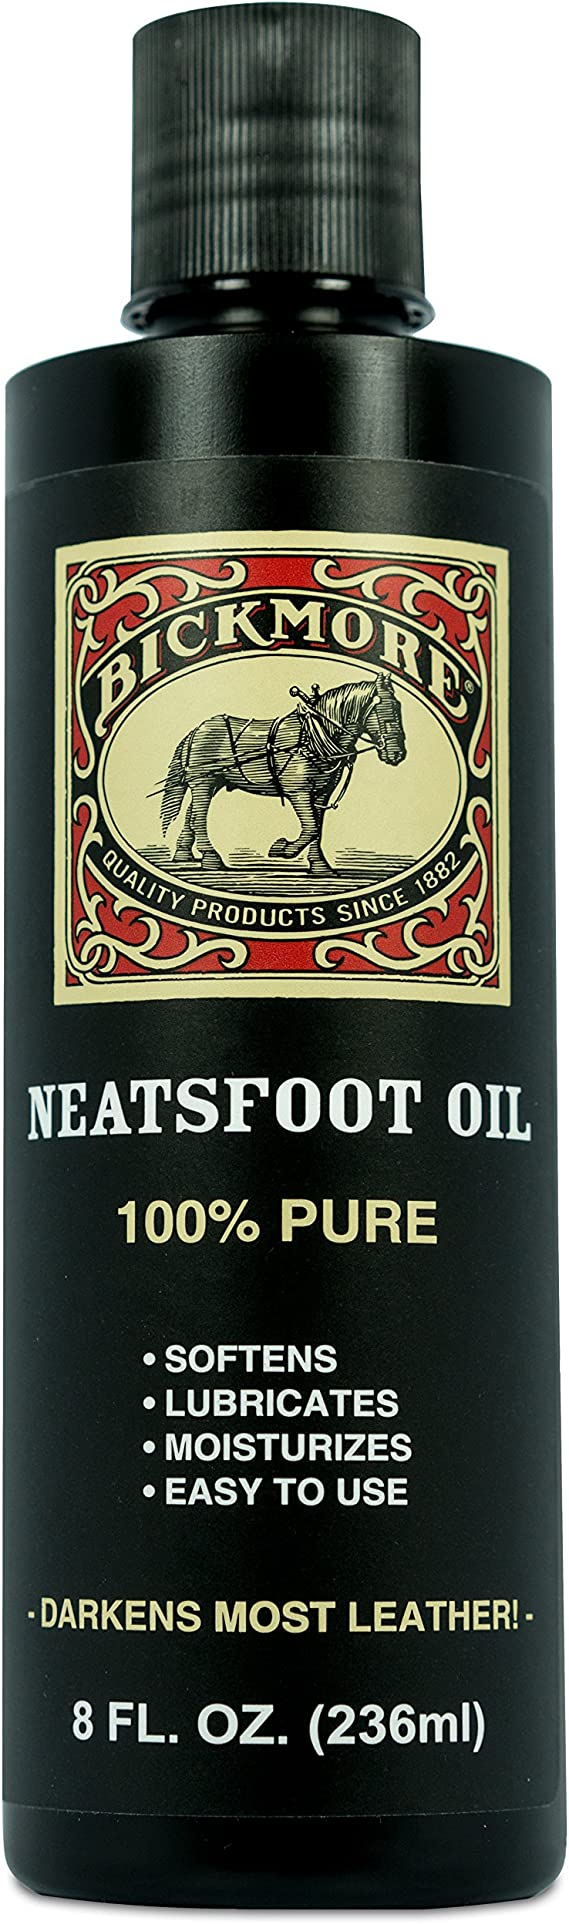 Bickmore 100% Pure Neatsfoot Oil 8 oz - Leather Conditioner